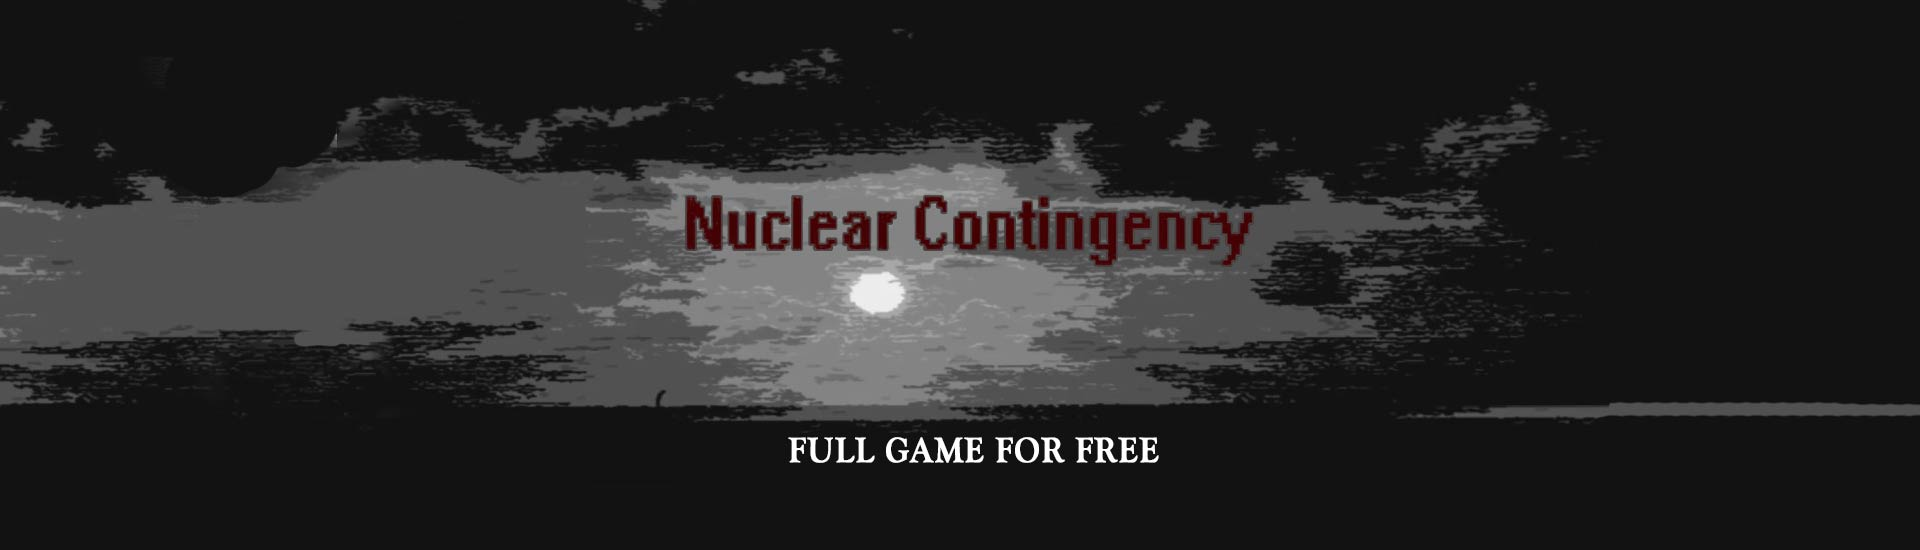 Nuclear Contingency cover